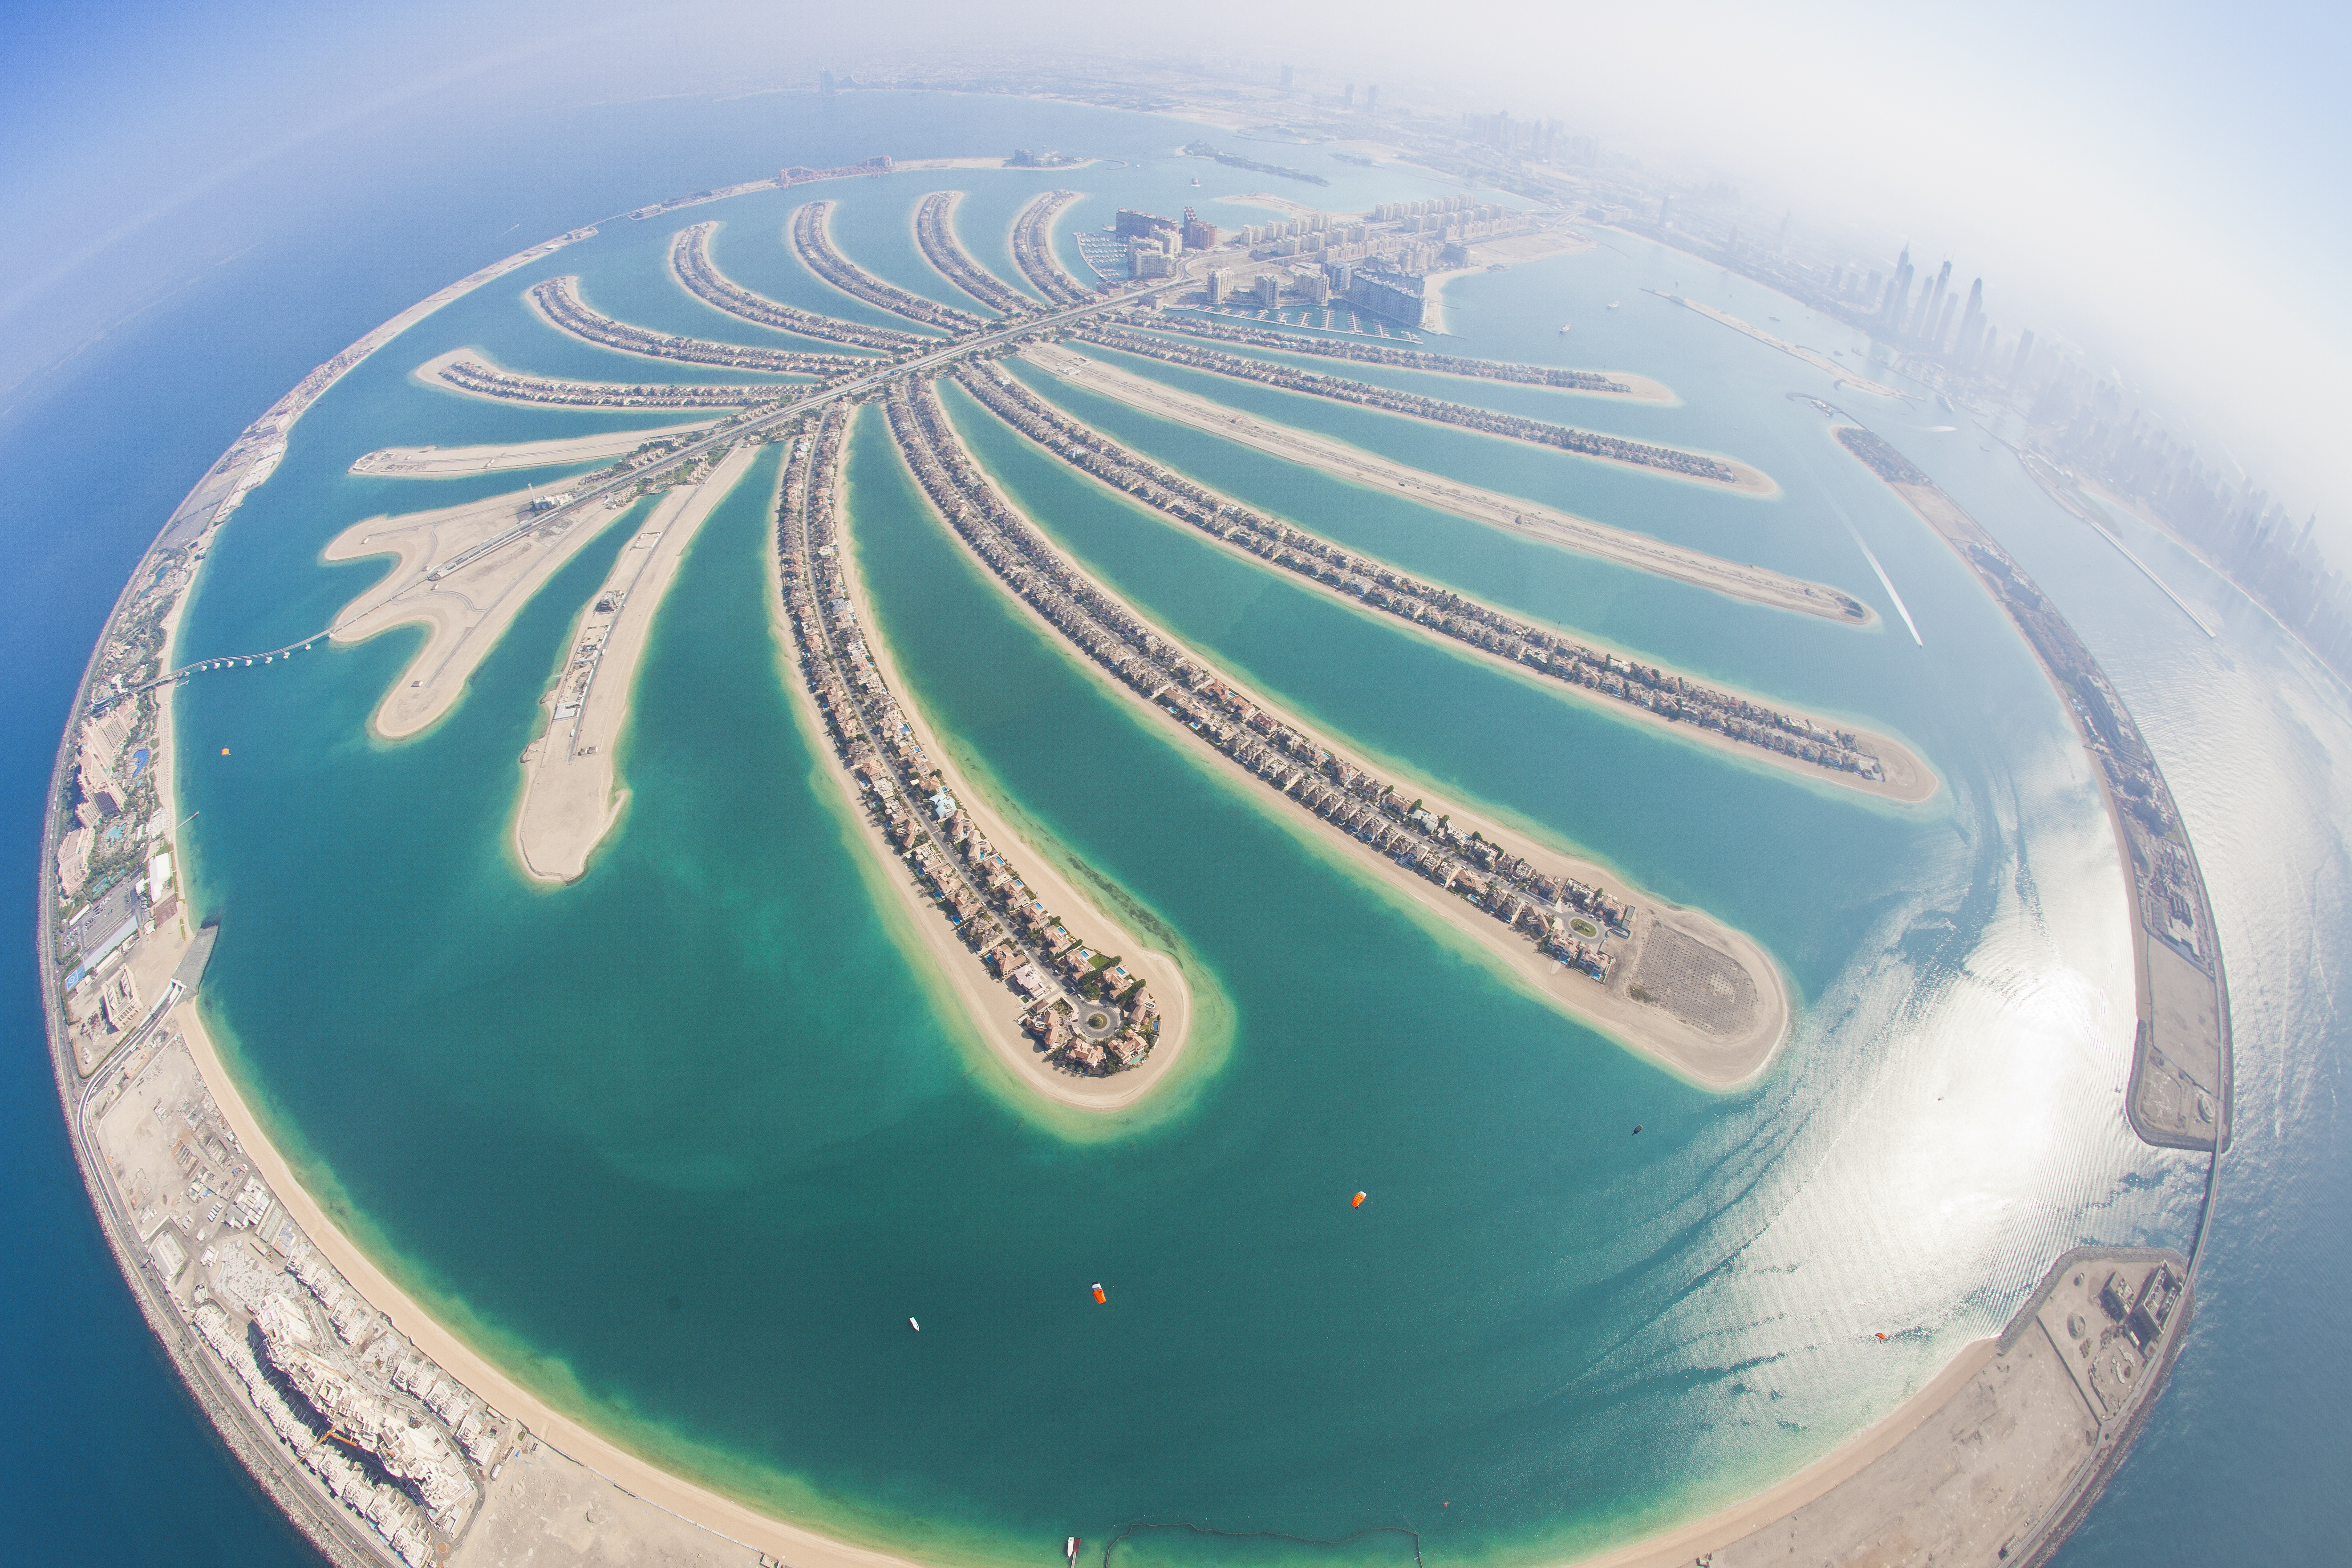 The Best Water and Amusement Parks in Dubai